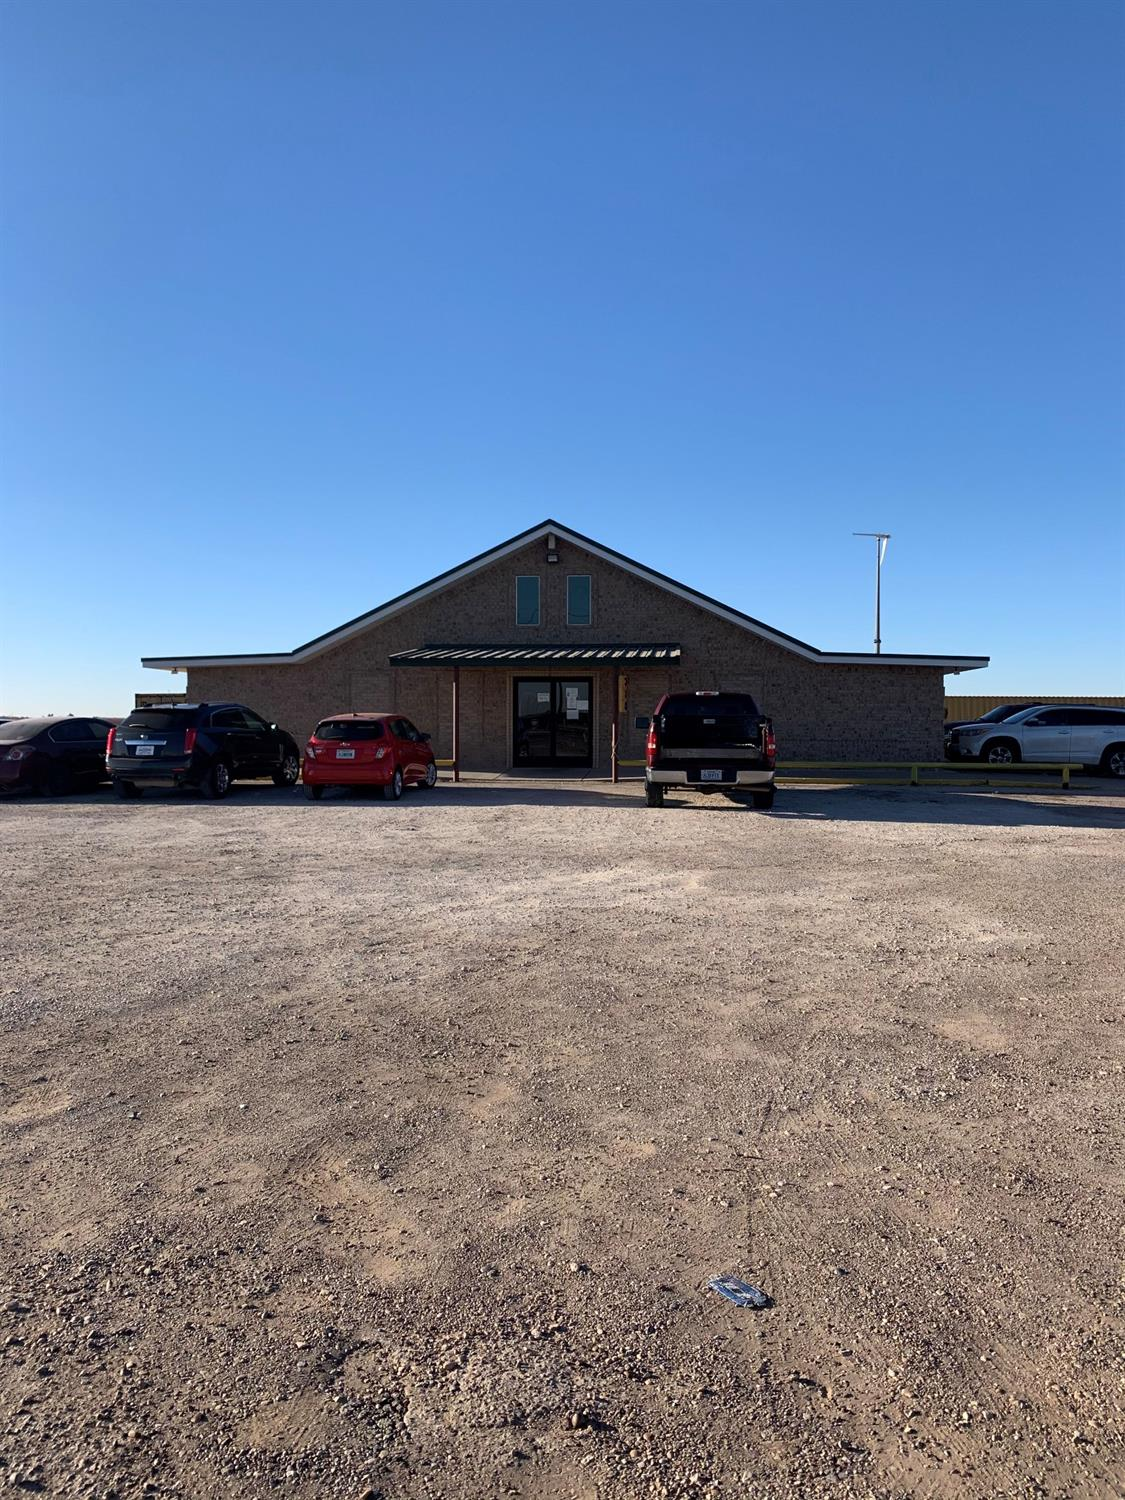 ReDUCED!! 3,600 sq. ft. office building on 1.49 acres just 1 mile outside Lubbock City limits on Highway 84. Building  has 2 new A/C's and a new hot water heater. On well and septic. Currently leased at $5,000/mo. Call now for appointment to view.